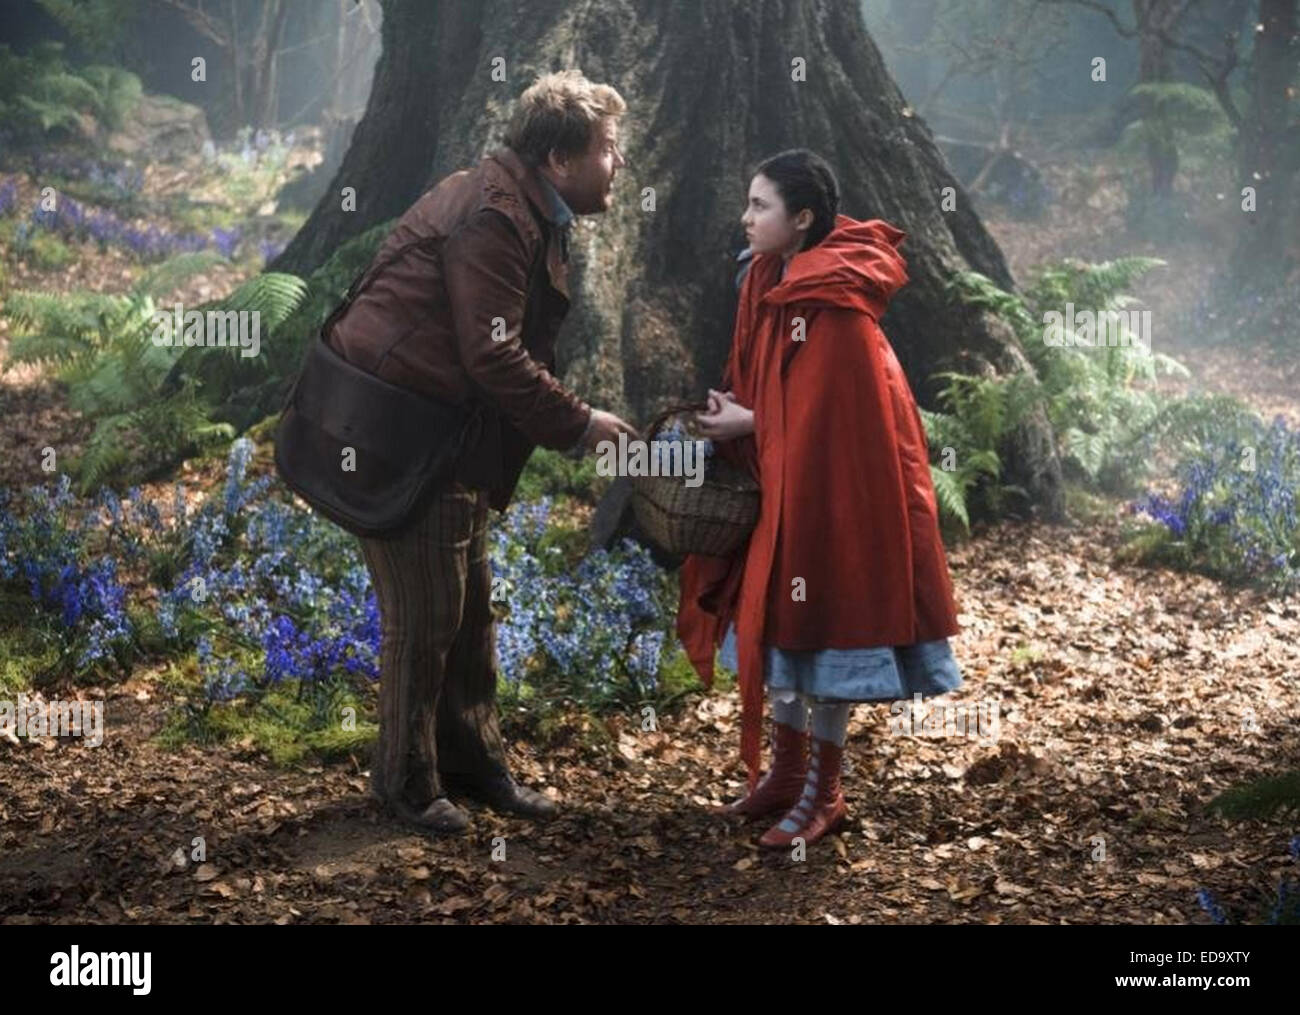 INTO THE WOODS 2014 Walt Disney Pictures film with Lilla Crawford and James Corden - Stock Image